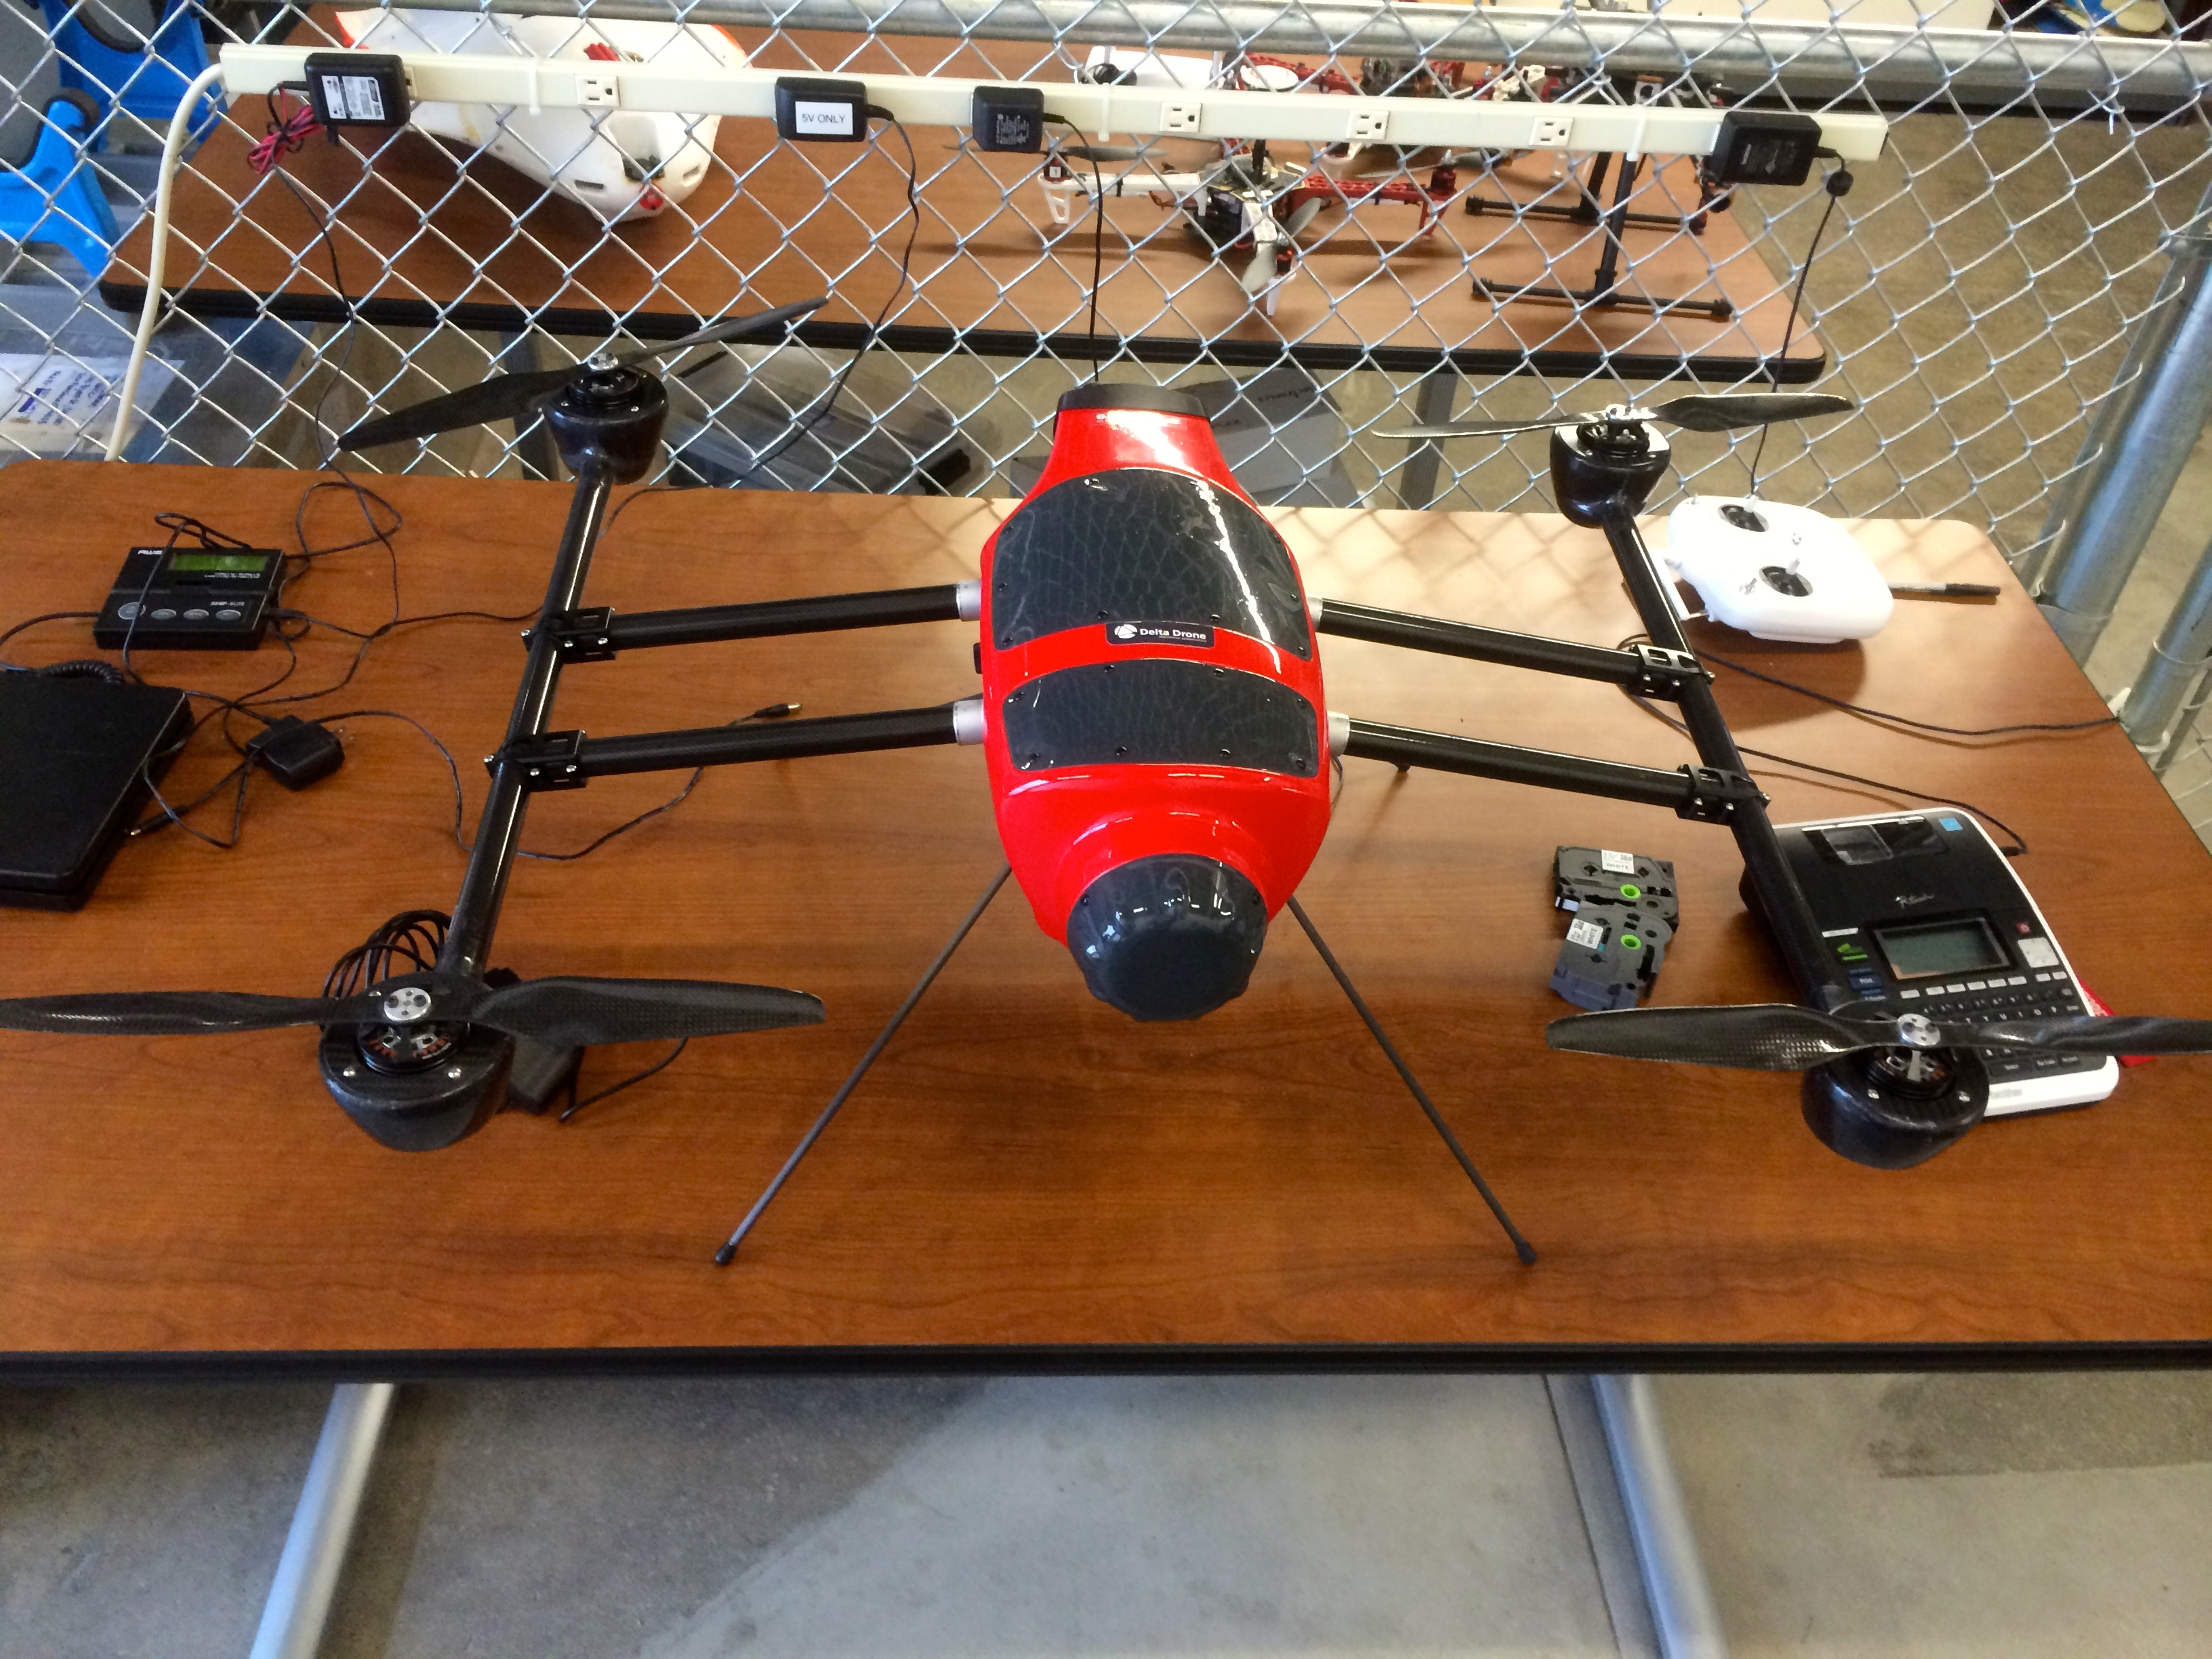 A Delta Drone UAV equipped with Airware's hardware. Photo by Signe Brewster.